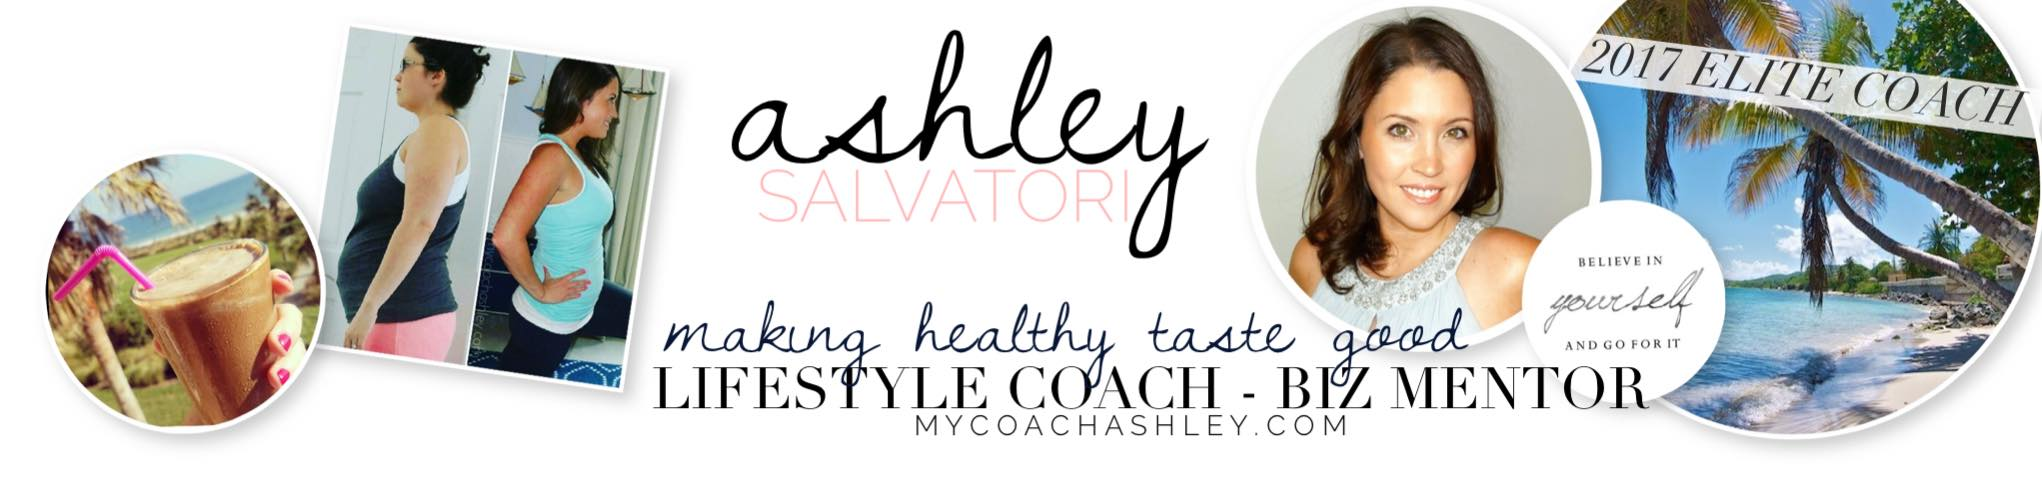 Ashley Salvatori - mycoachashley.com